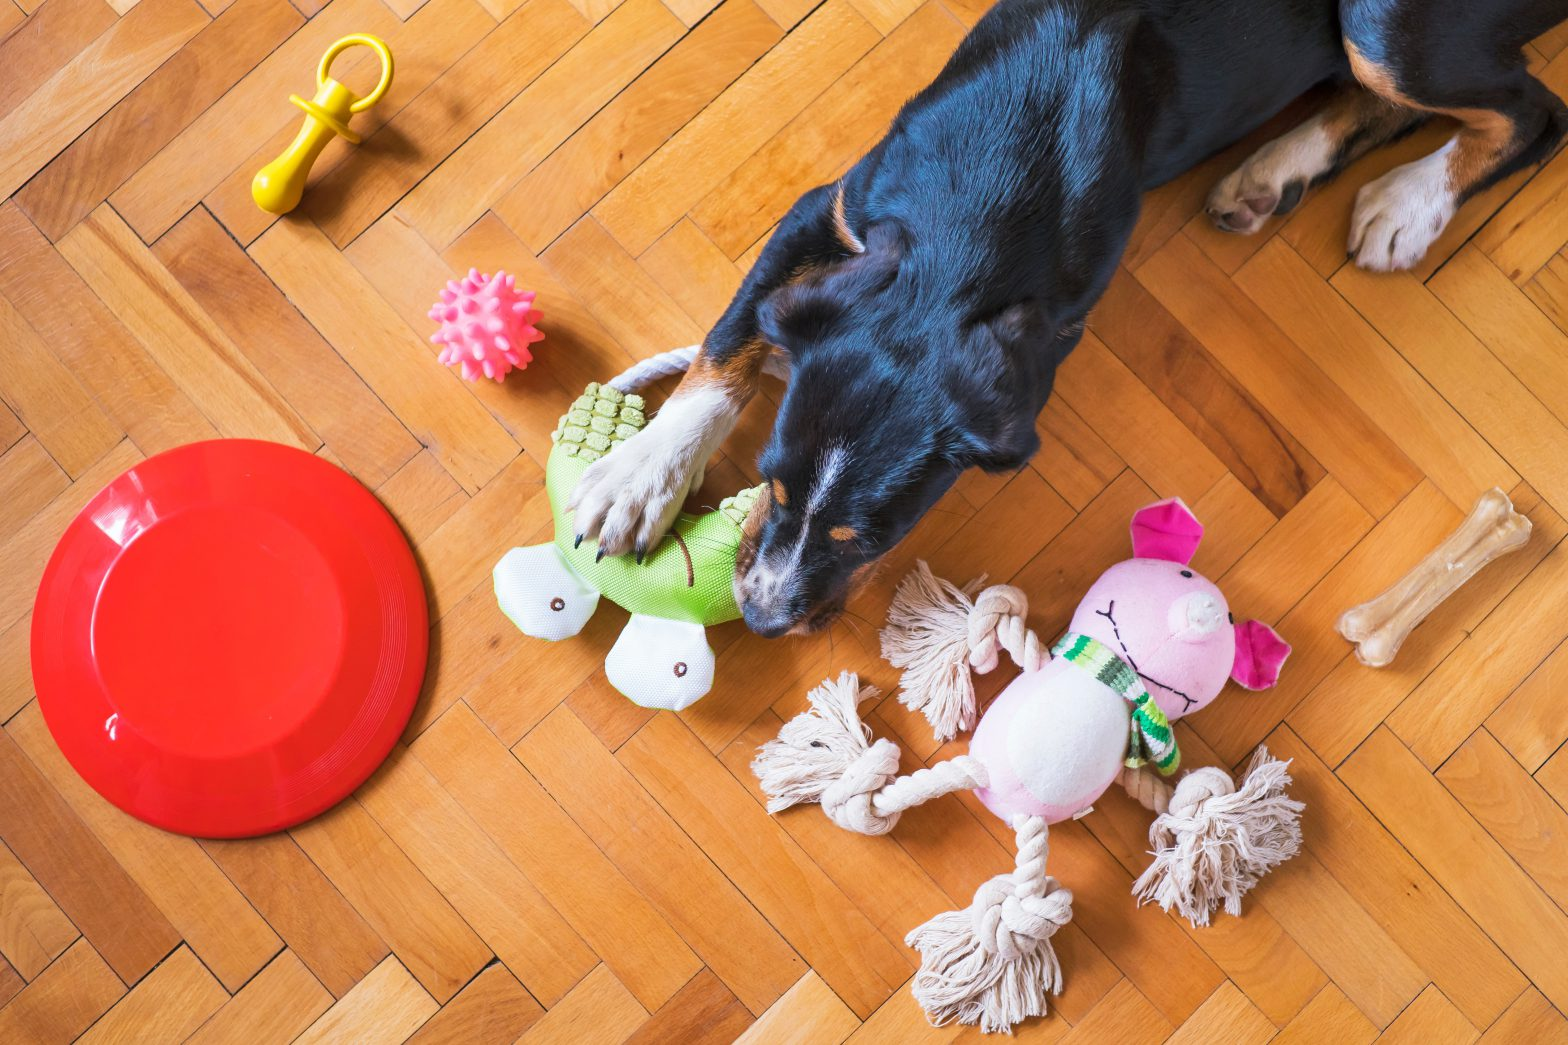 dog laying on wood floor surrounded by toys and frisbee